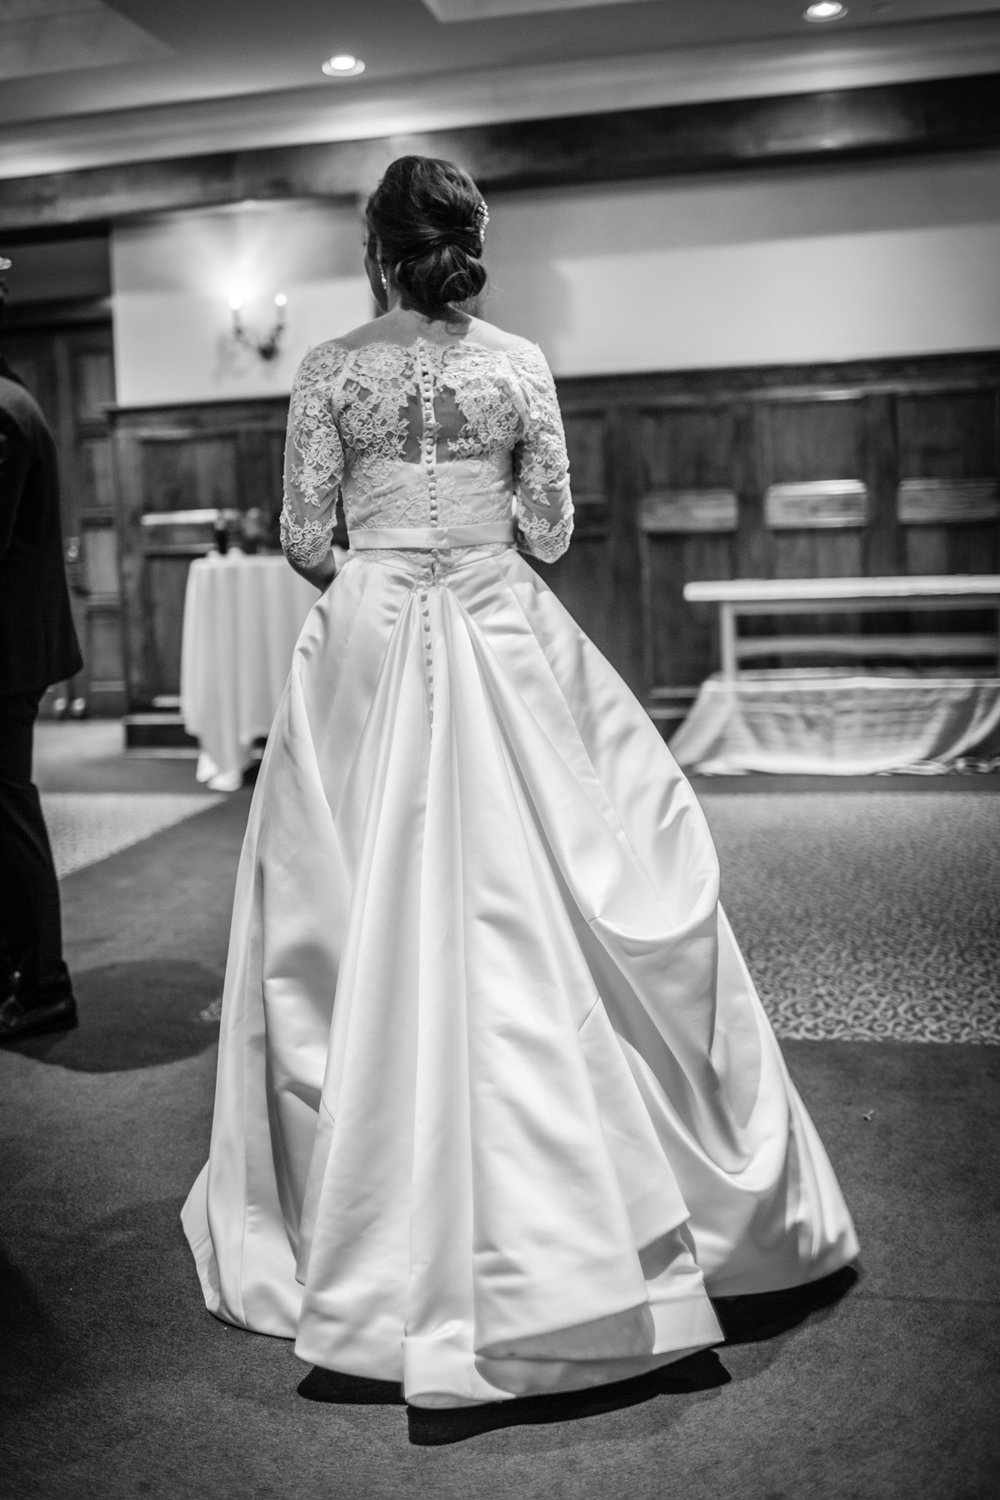 scranton_wedding_photographer_lettieri_pa (7 of 15).jpg